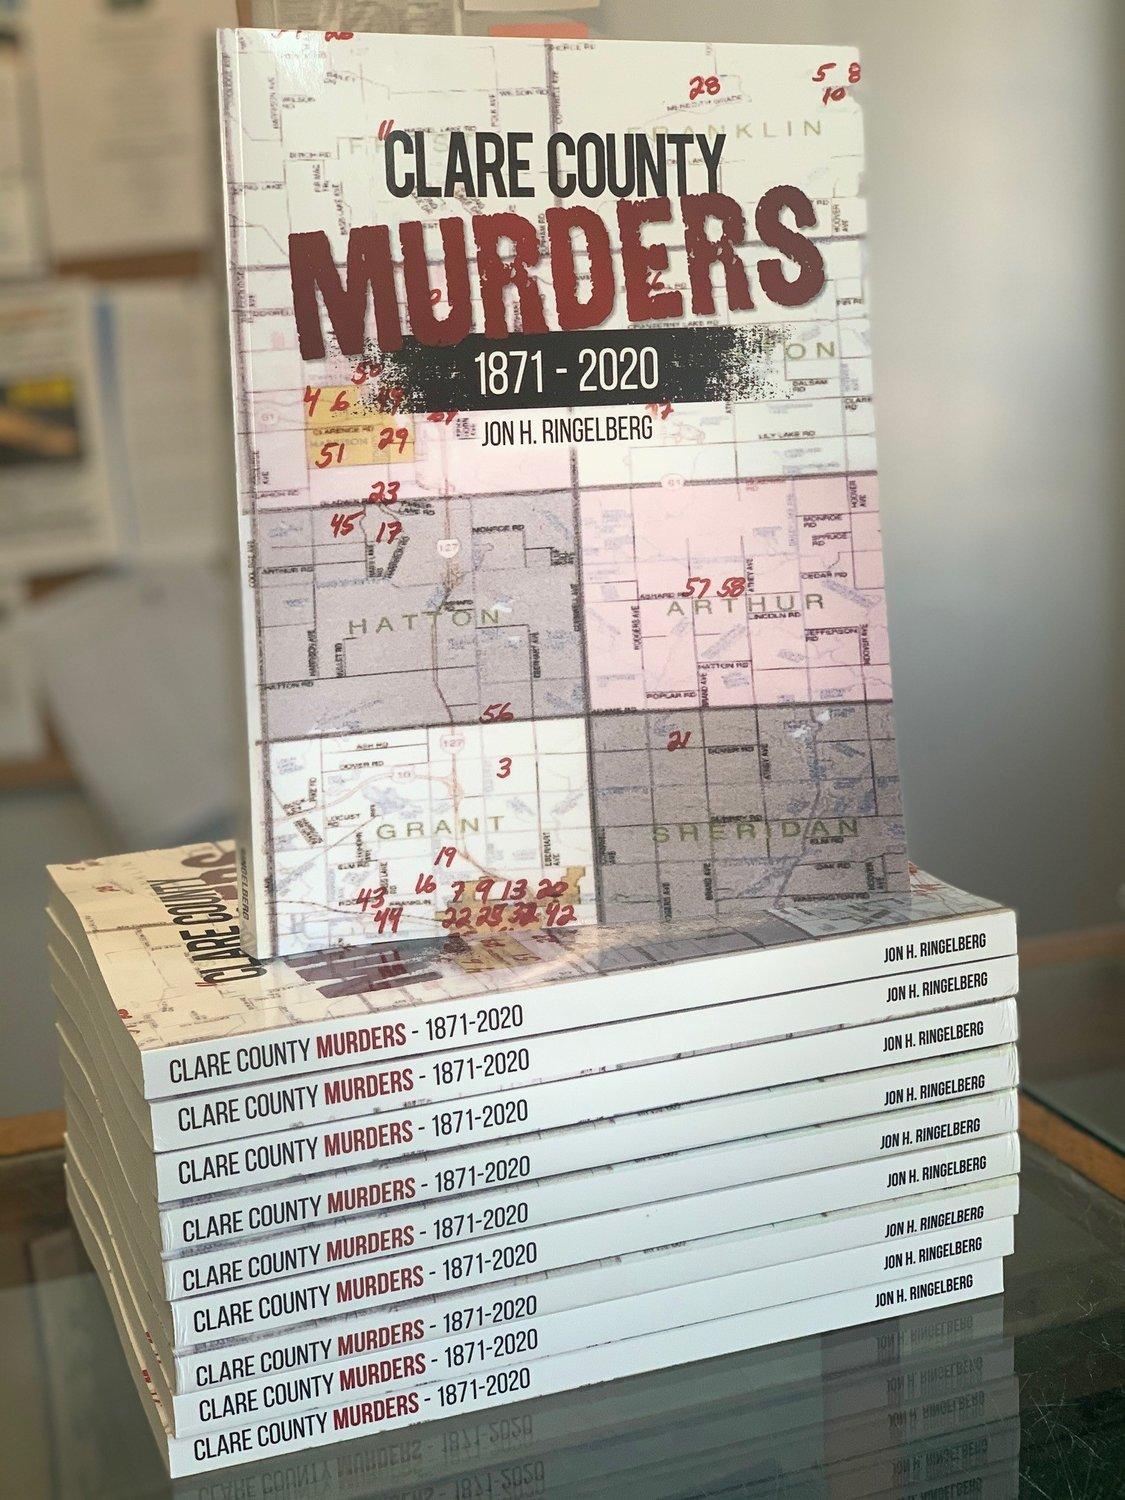 Clare County Murders-1871-2020 by Jon H. Ringelberg